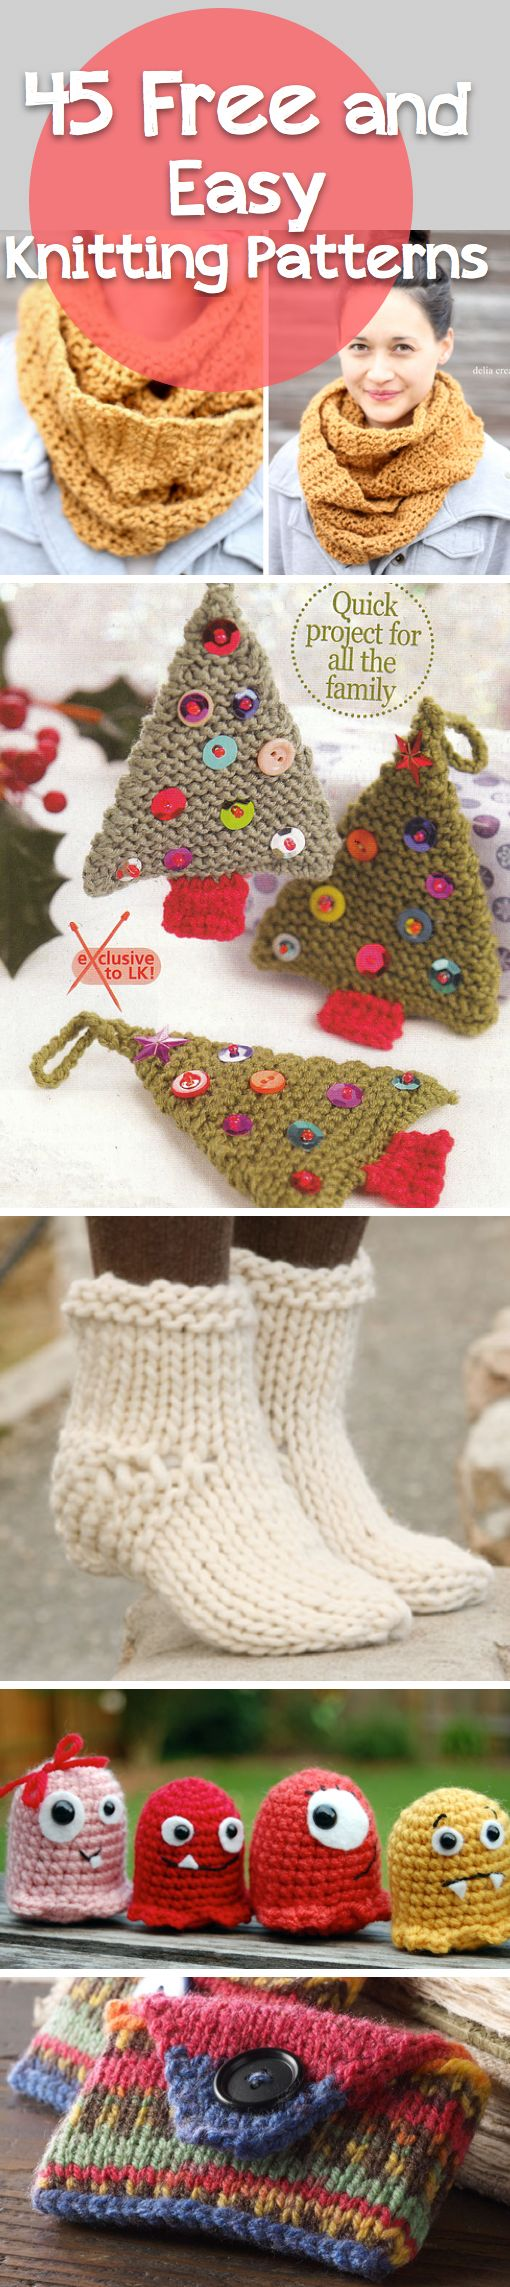 937 best diy images on pinterest how to knit 45 free and easy knitting patterns id like to bankloansurffo Images